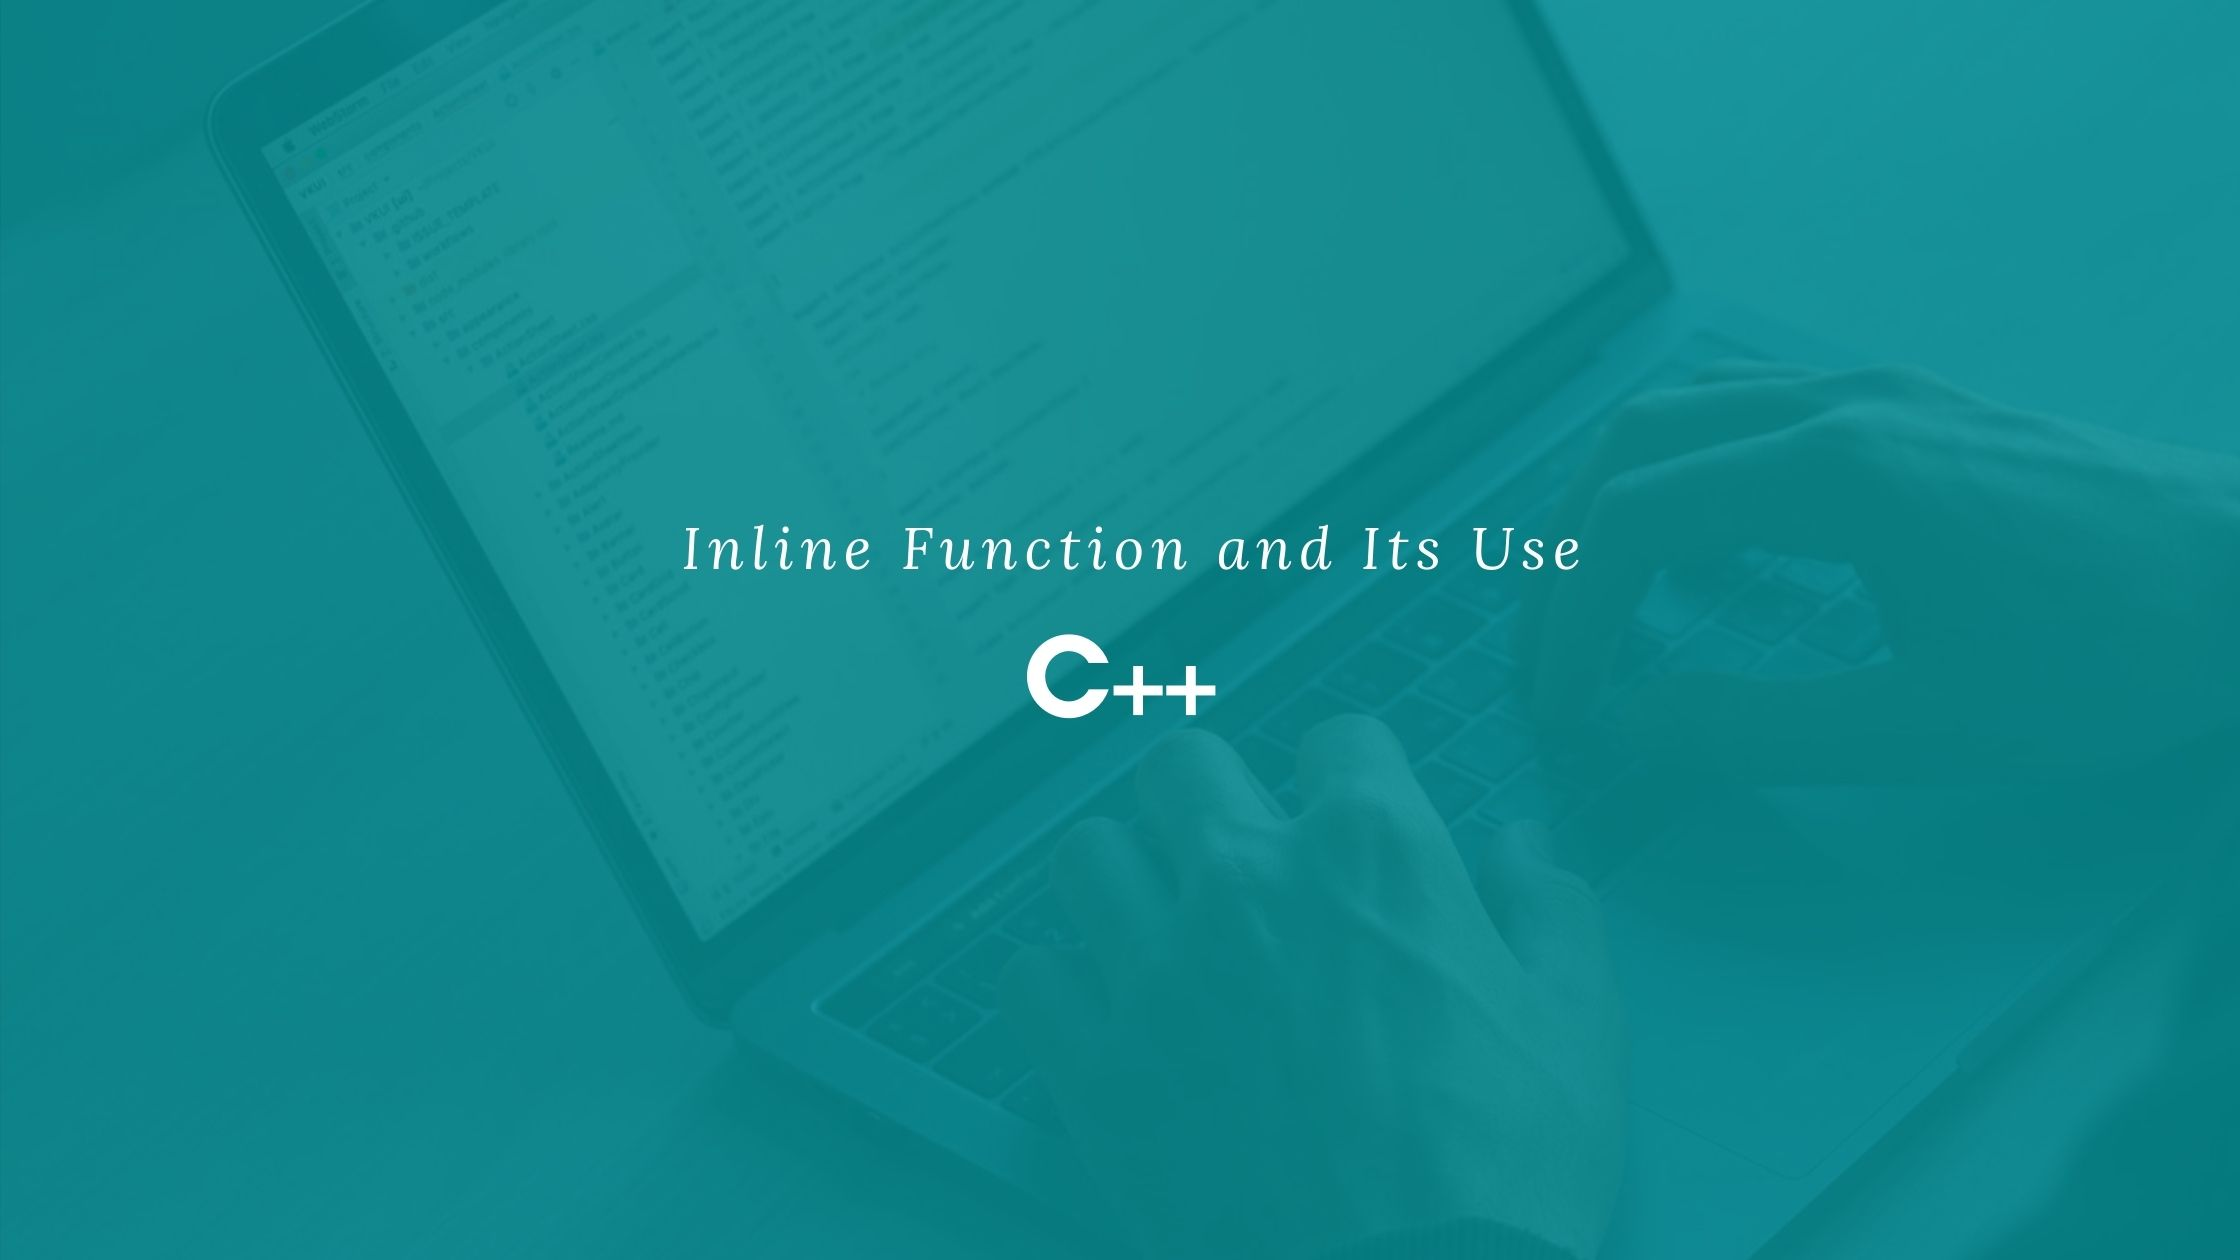 Inline Function and Its Use